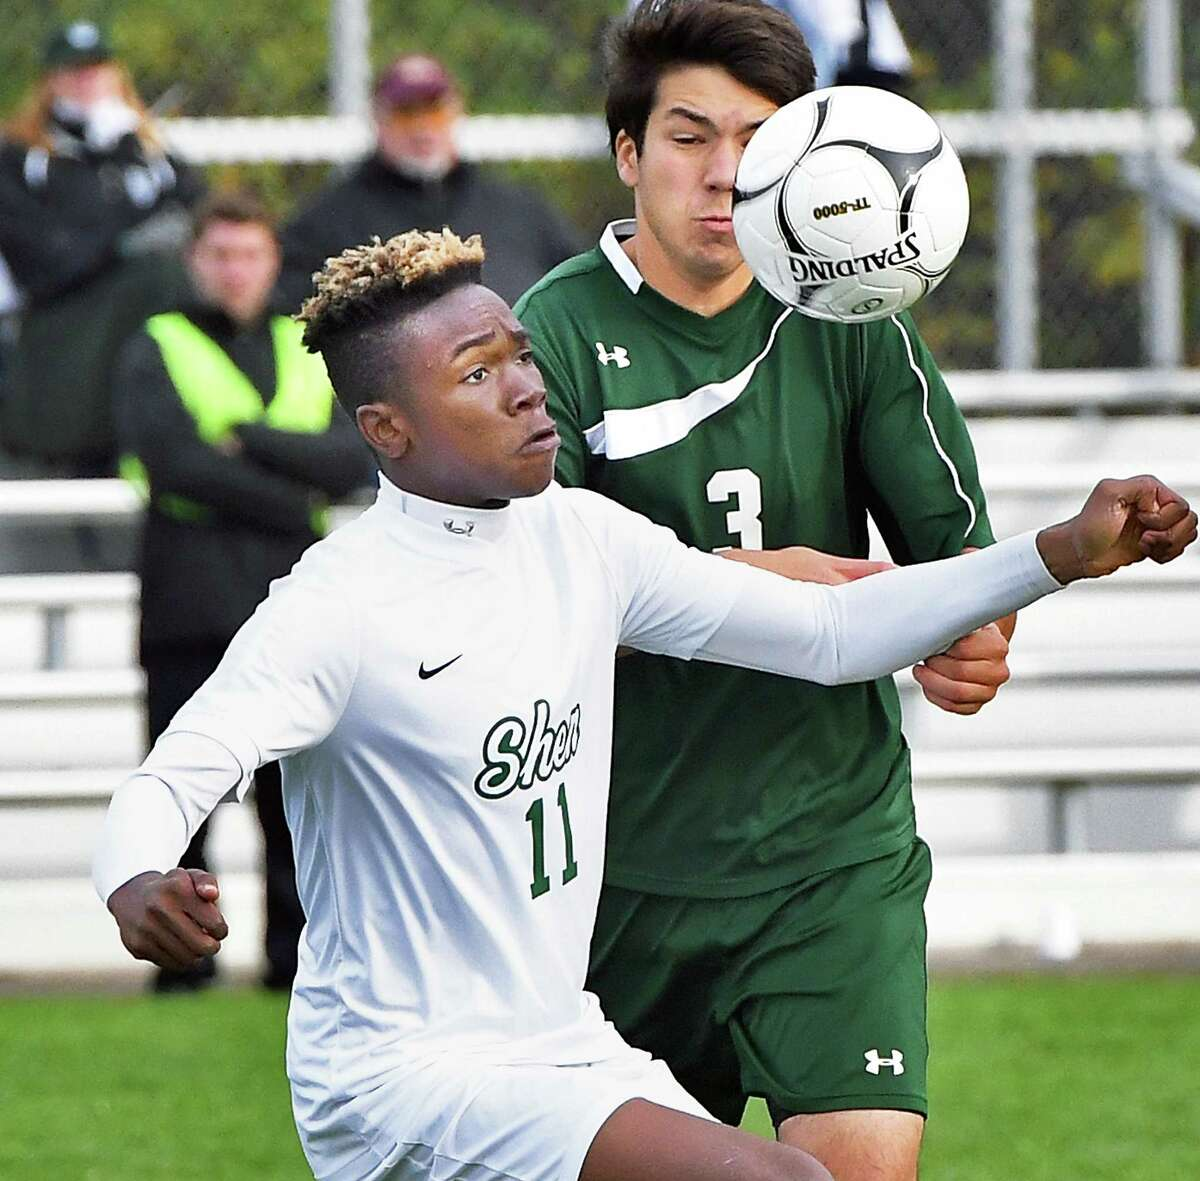 Shen's #11 Jaylin Sykes beats Fayetteville Manlius' #3 Luke D'Amato to the ball during Saturday's regional match Nov. 4, 2017 in Colonie, NY. (John Carl D'Annibale / Times Union)